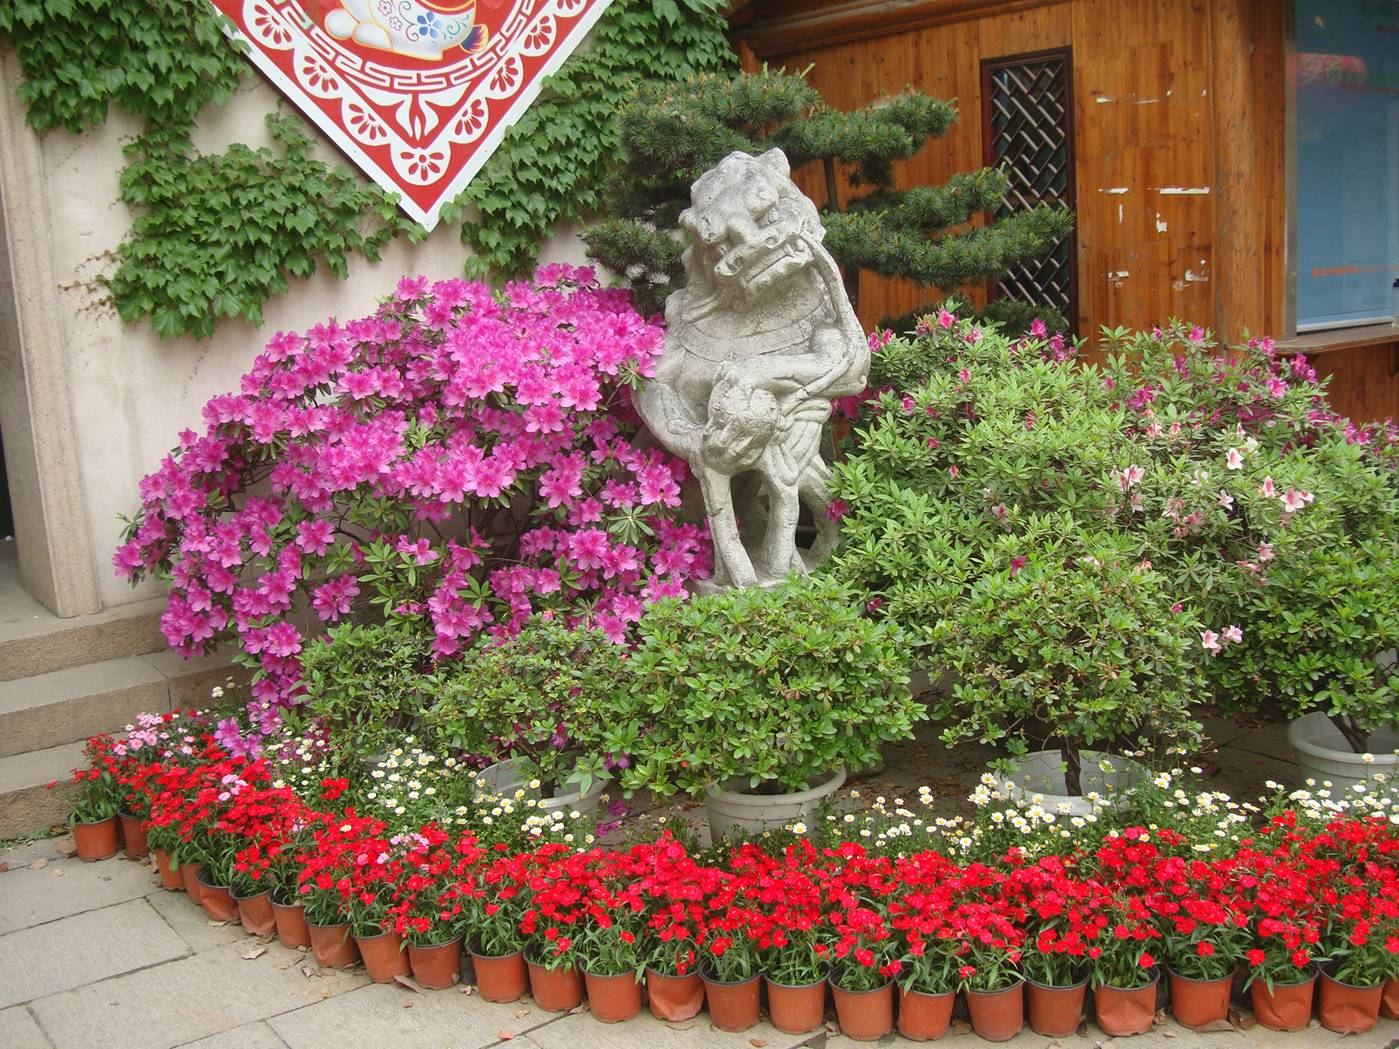 Picture:  The small flower bed beside the gate to Xi Hui Park, Wuxi, China.  With a Chinese gargoyle.